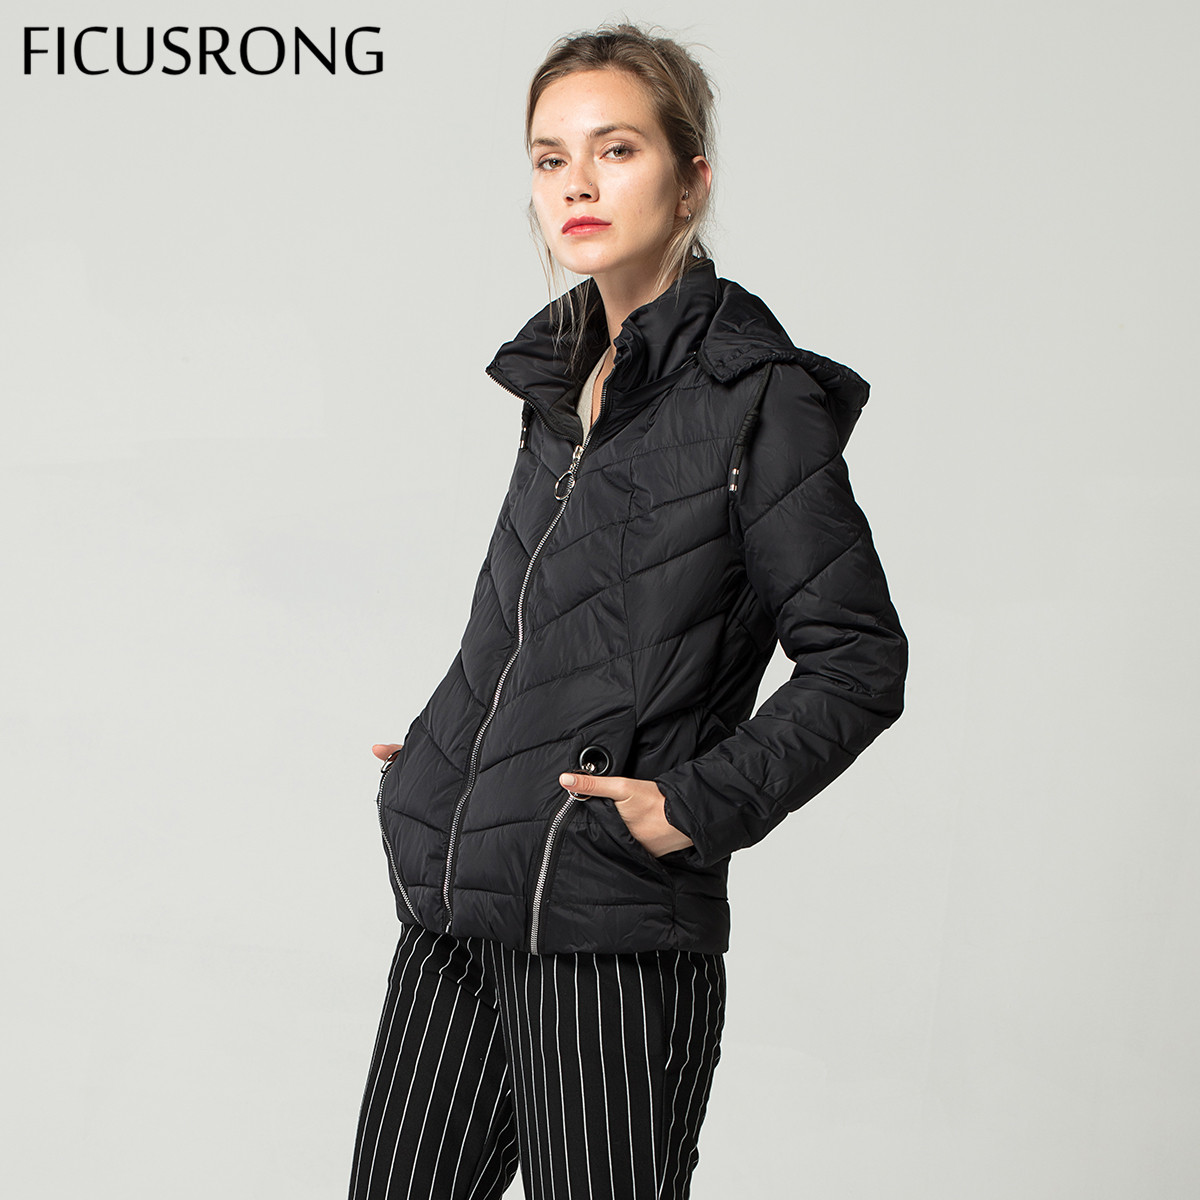 Fashion Short Soft Spring Autumn   Basic     Jacket   Women Cotton Padded   Jacket   Female Outerwear Womens Hooded Coats Tops FICUSRONG